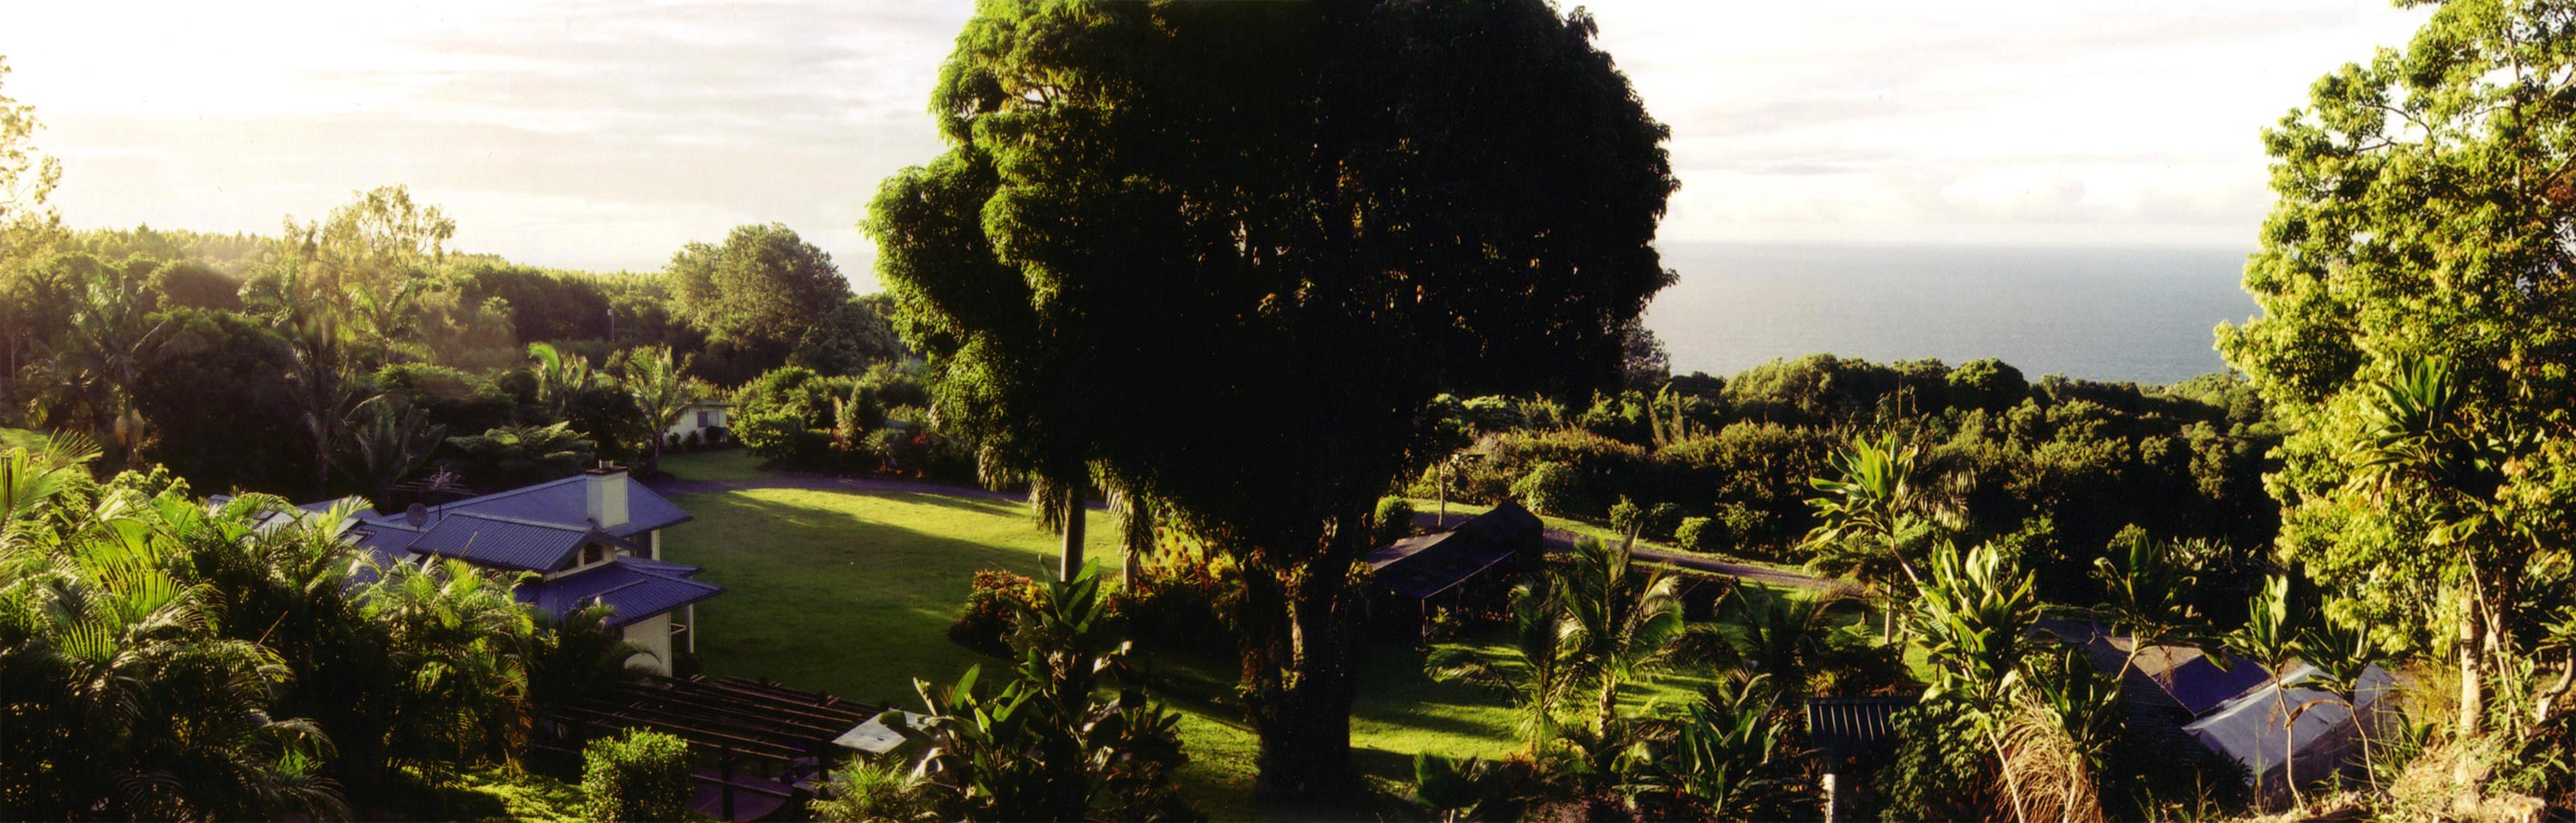 A panorama of the Pettus' house on the Hamakua Coast of the Big Island, pasted together from two photos.